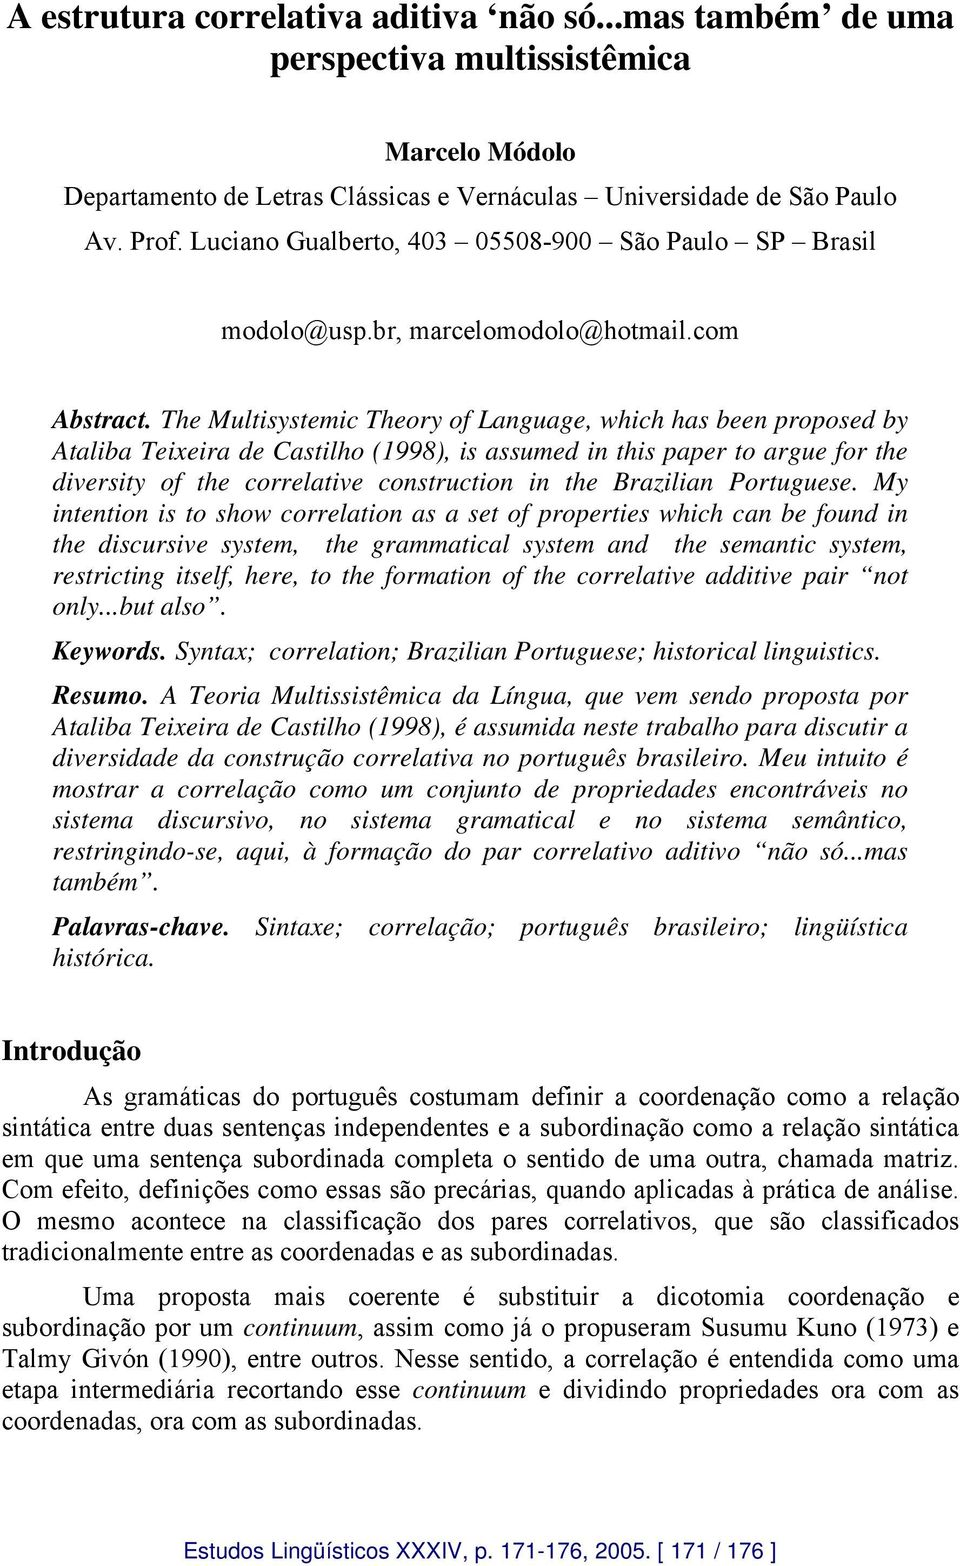 The Multisystemic Theory of Language, which has been proposed by Ataliba Teixeira de Castilho (1998), is assumed in this paper to argue for the diversity of the correlative construction in the